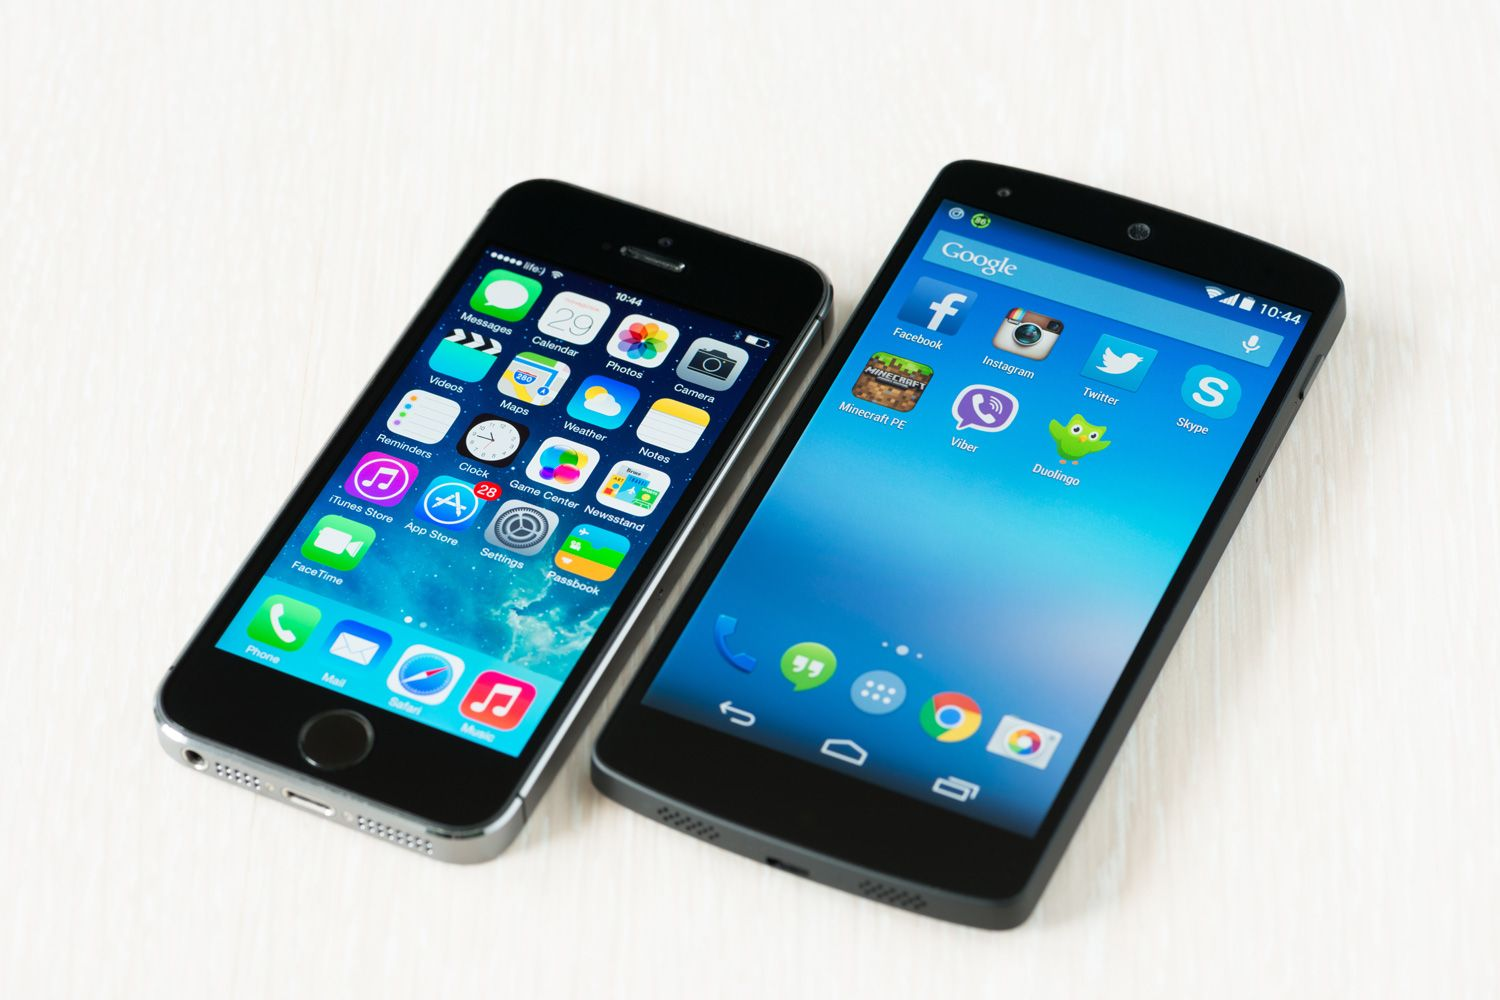 Apple Is Not Building an iPhone to Android Data Transfer